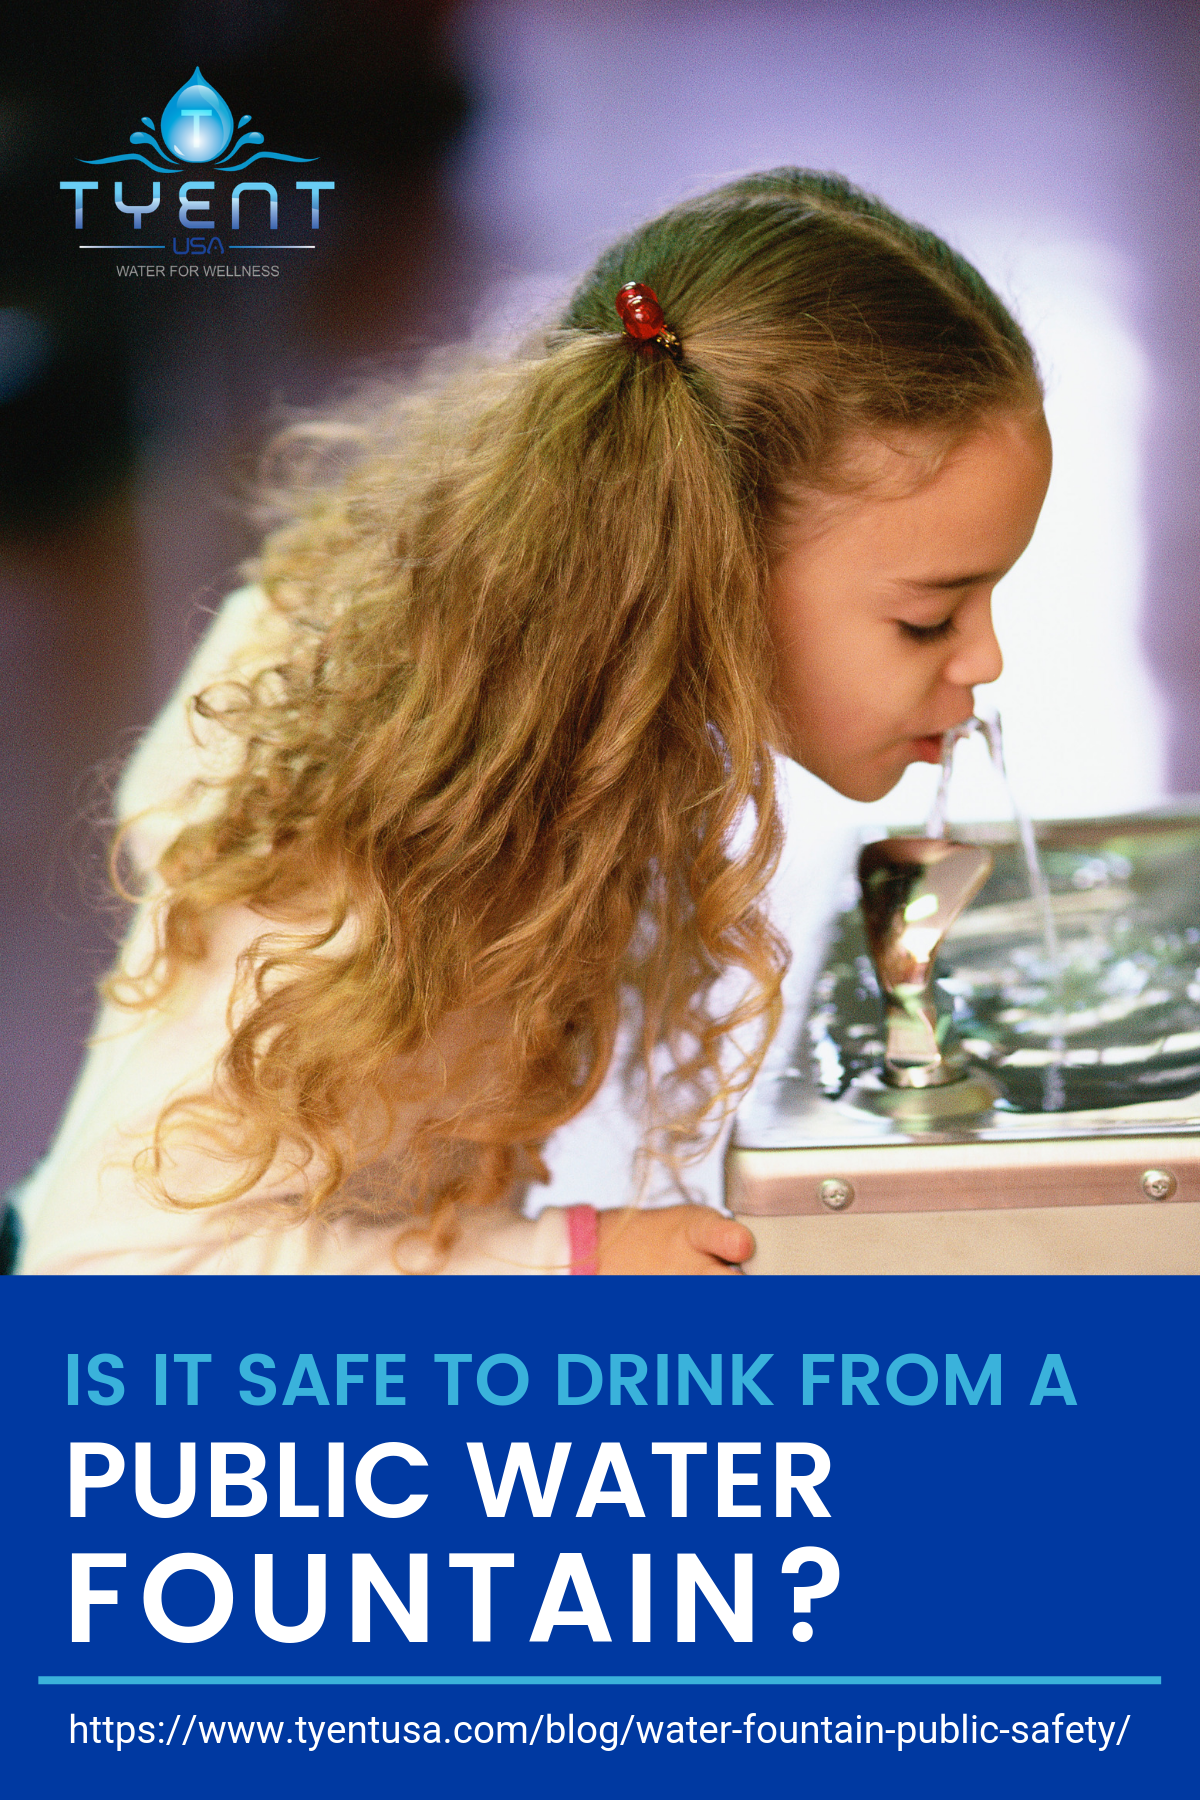 Is It Safe To Drink From A Public Water Fountain? https://www.tyentusa.com/blog/water-fountain-public-safety/